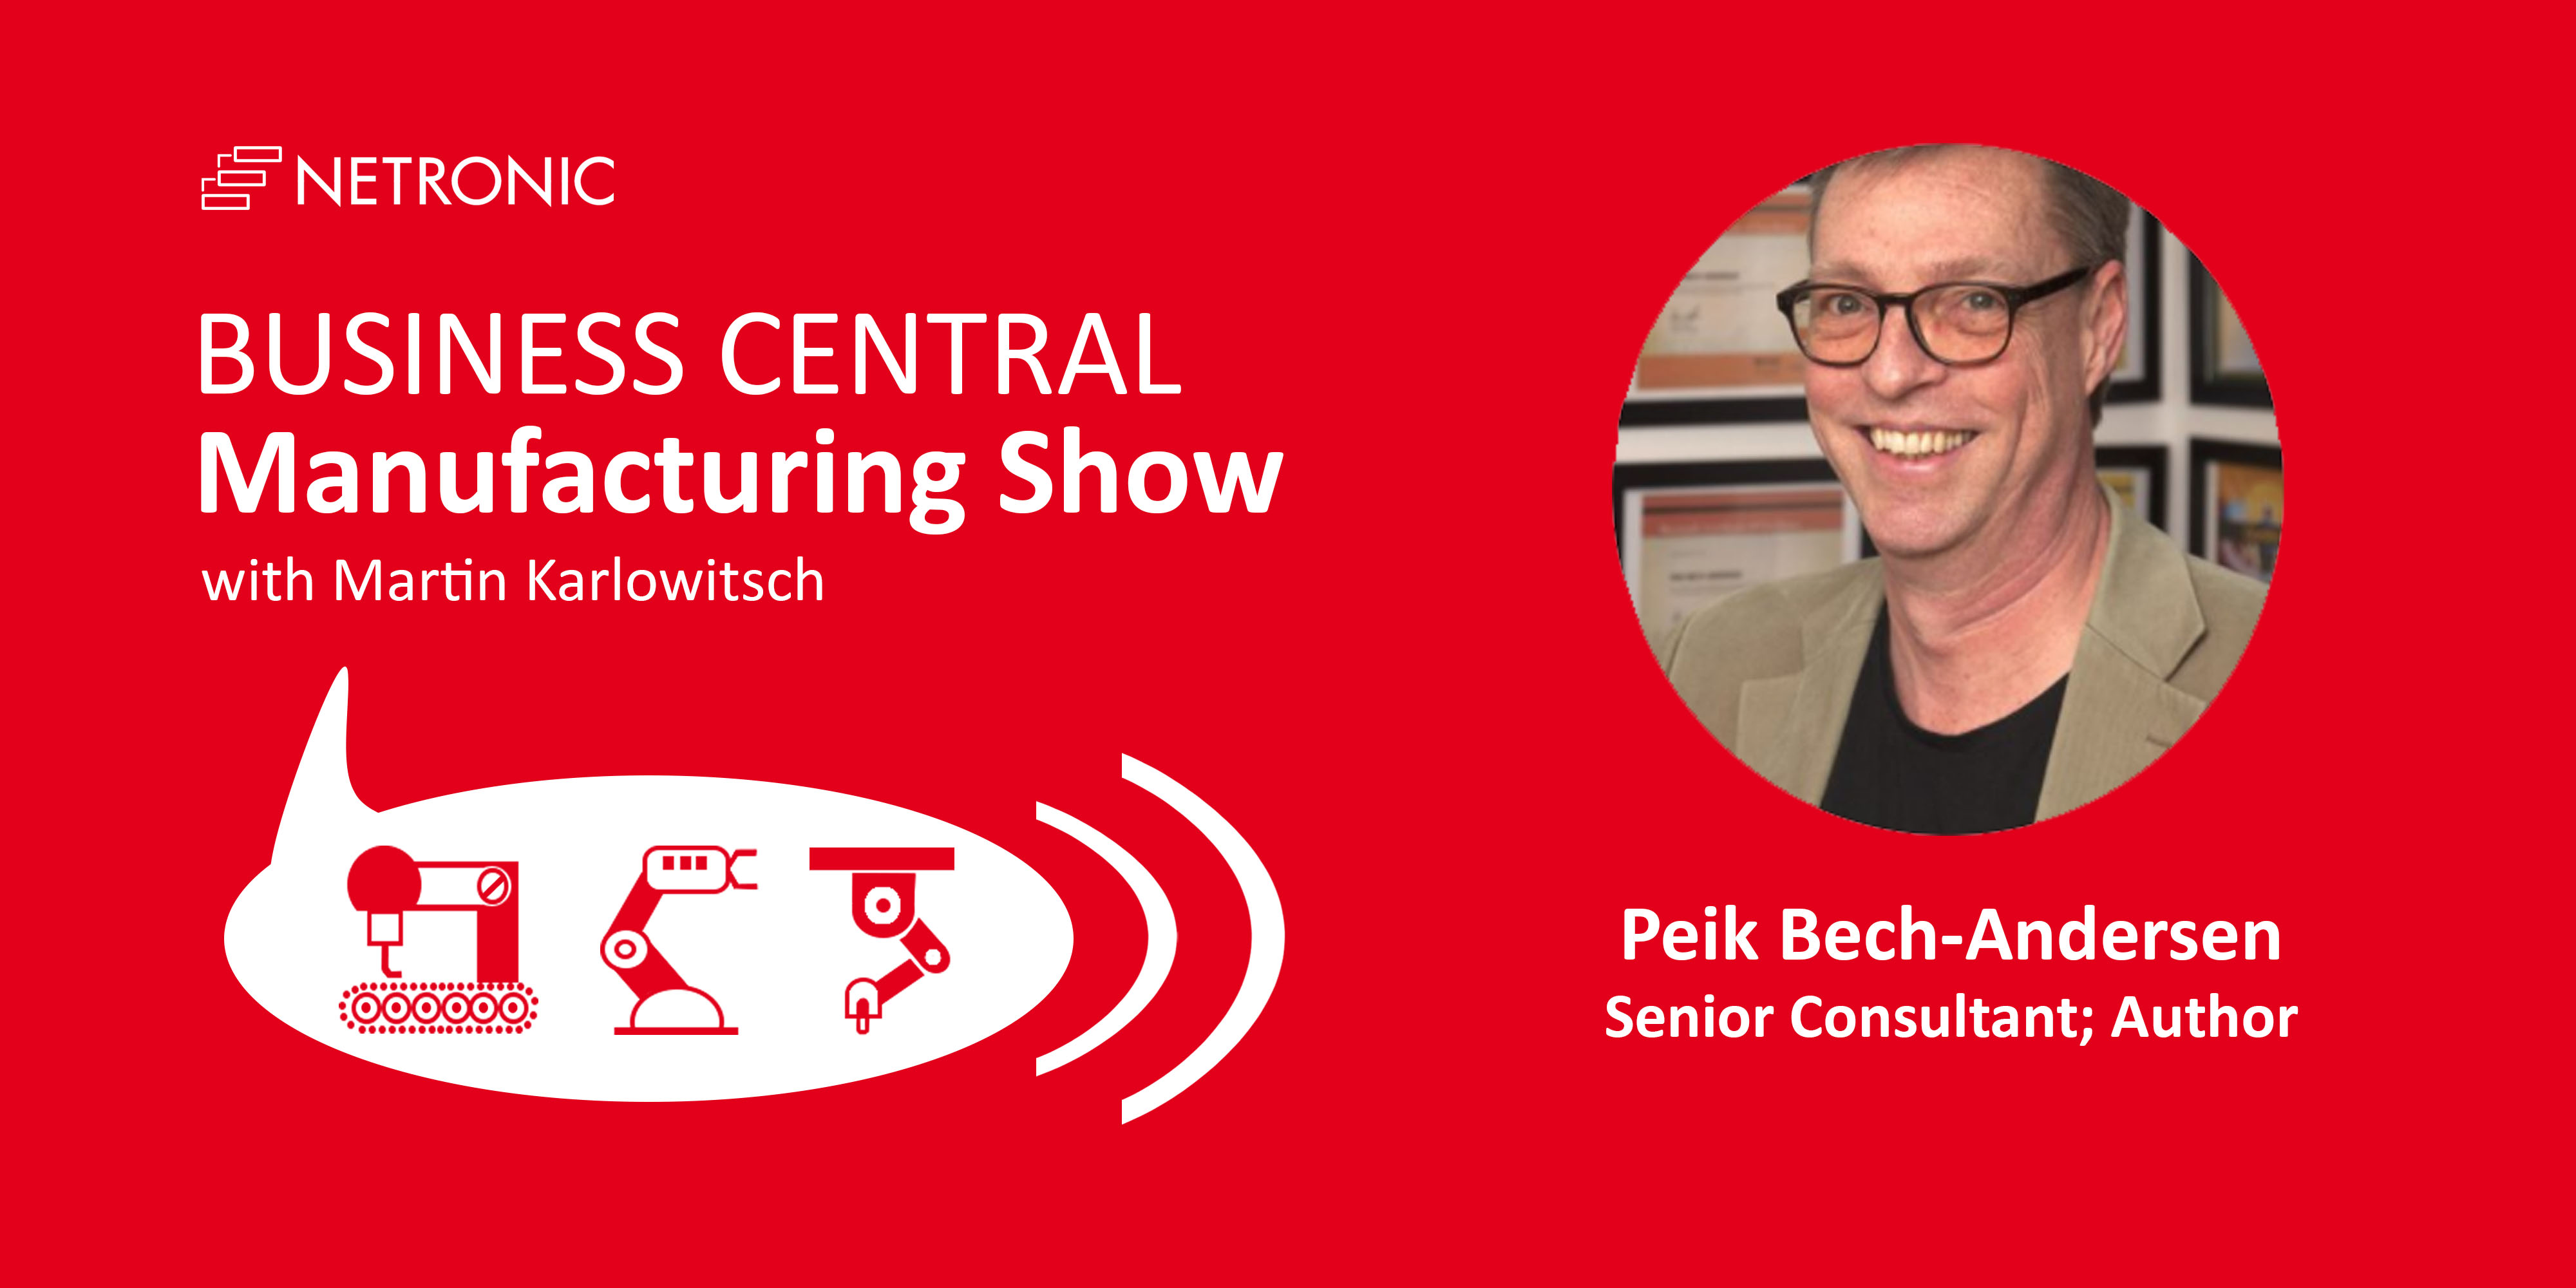 Business Central Manufacturing Show - Episode 02 - Peik Bech-Andersen